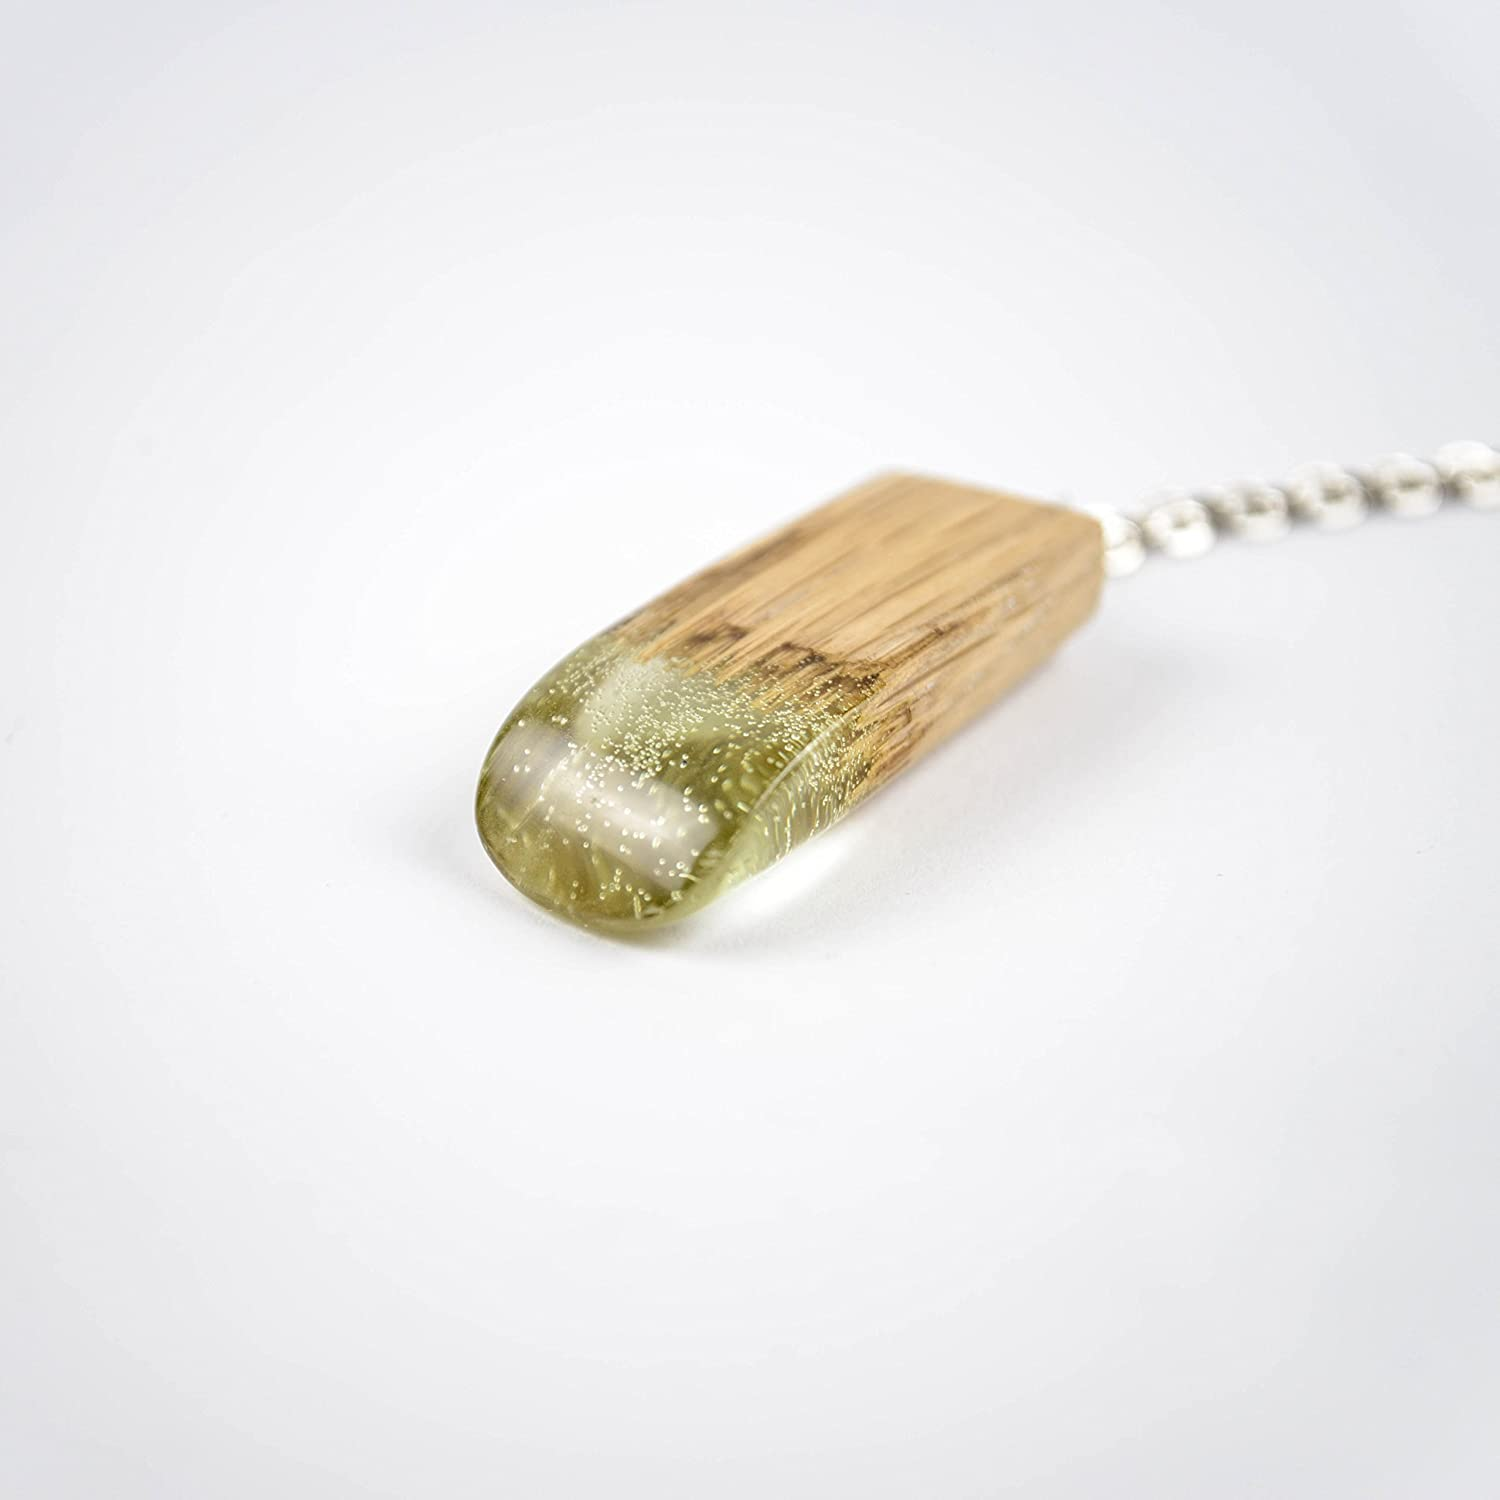 Wood Resin Pendant OKTIE Resin Pendant Wooden Pendant Green Pendant Eco-Friendly Jewelry Hand Made resin Jewelry